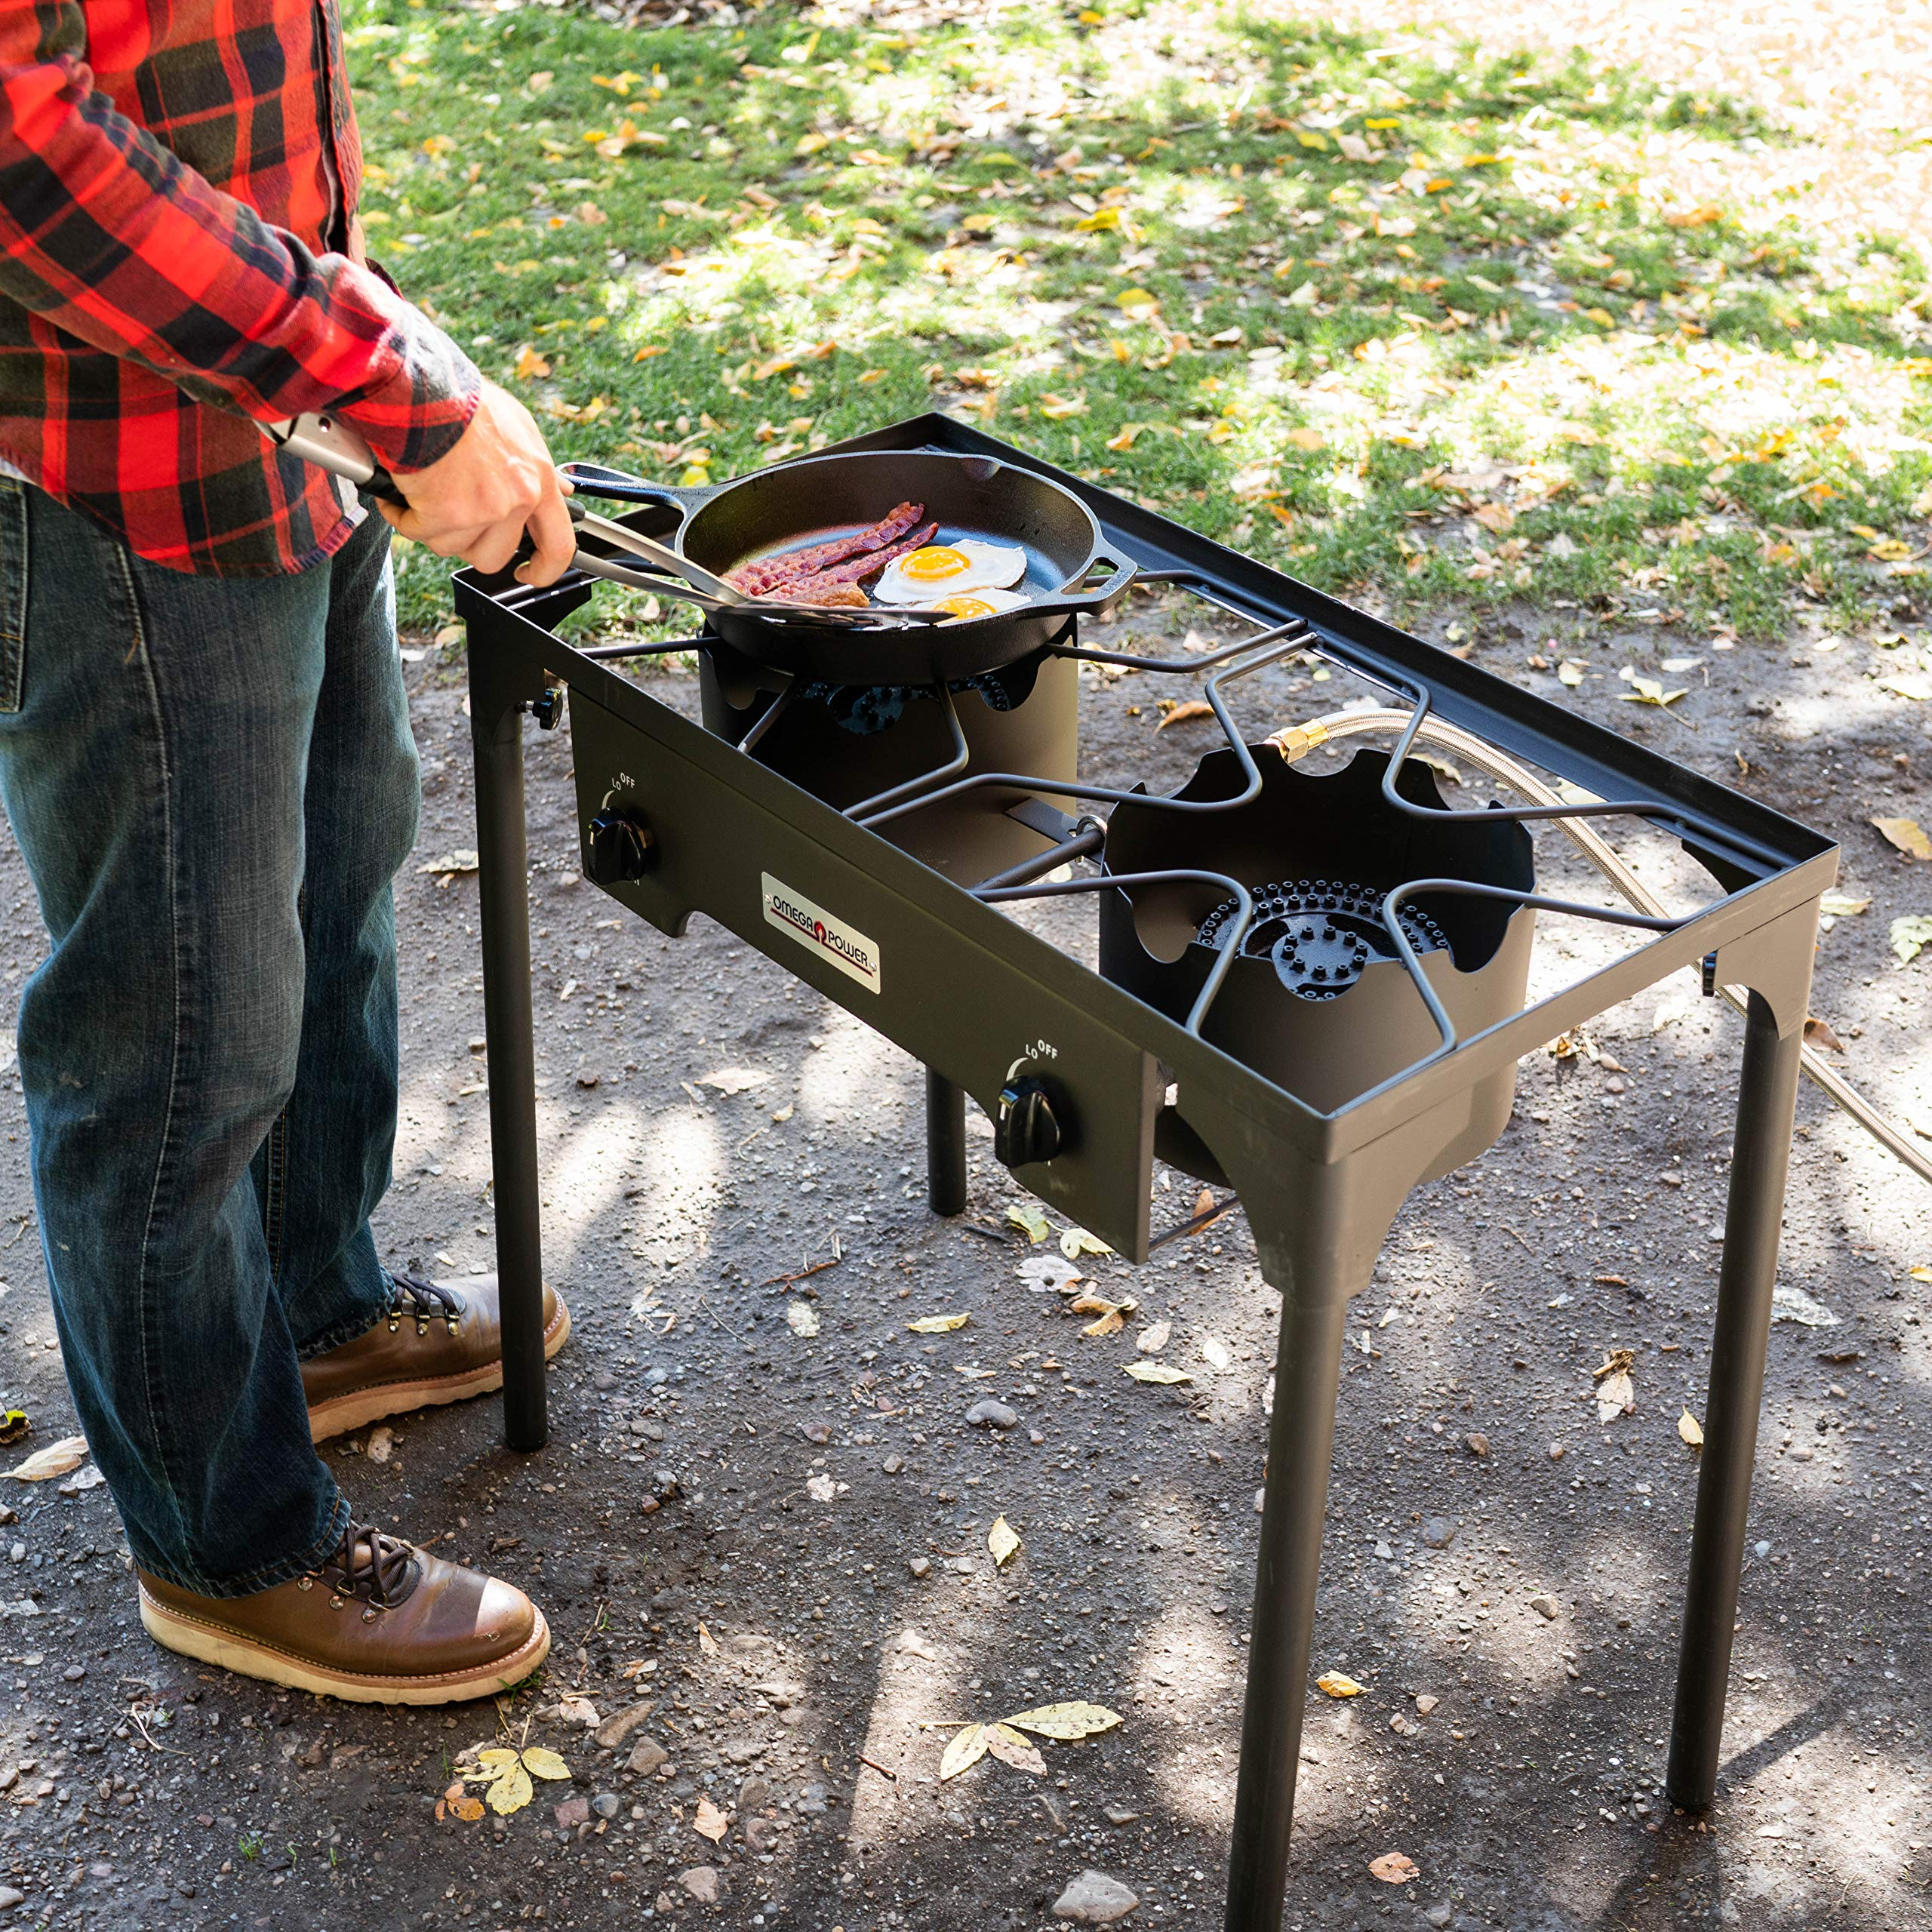 Leaderware High Pressure Gas Cooking Stove with 2 Burners, Outdoor Camping Kitchen Accessories by Leaderware (Image #6)